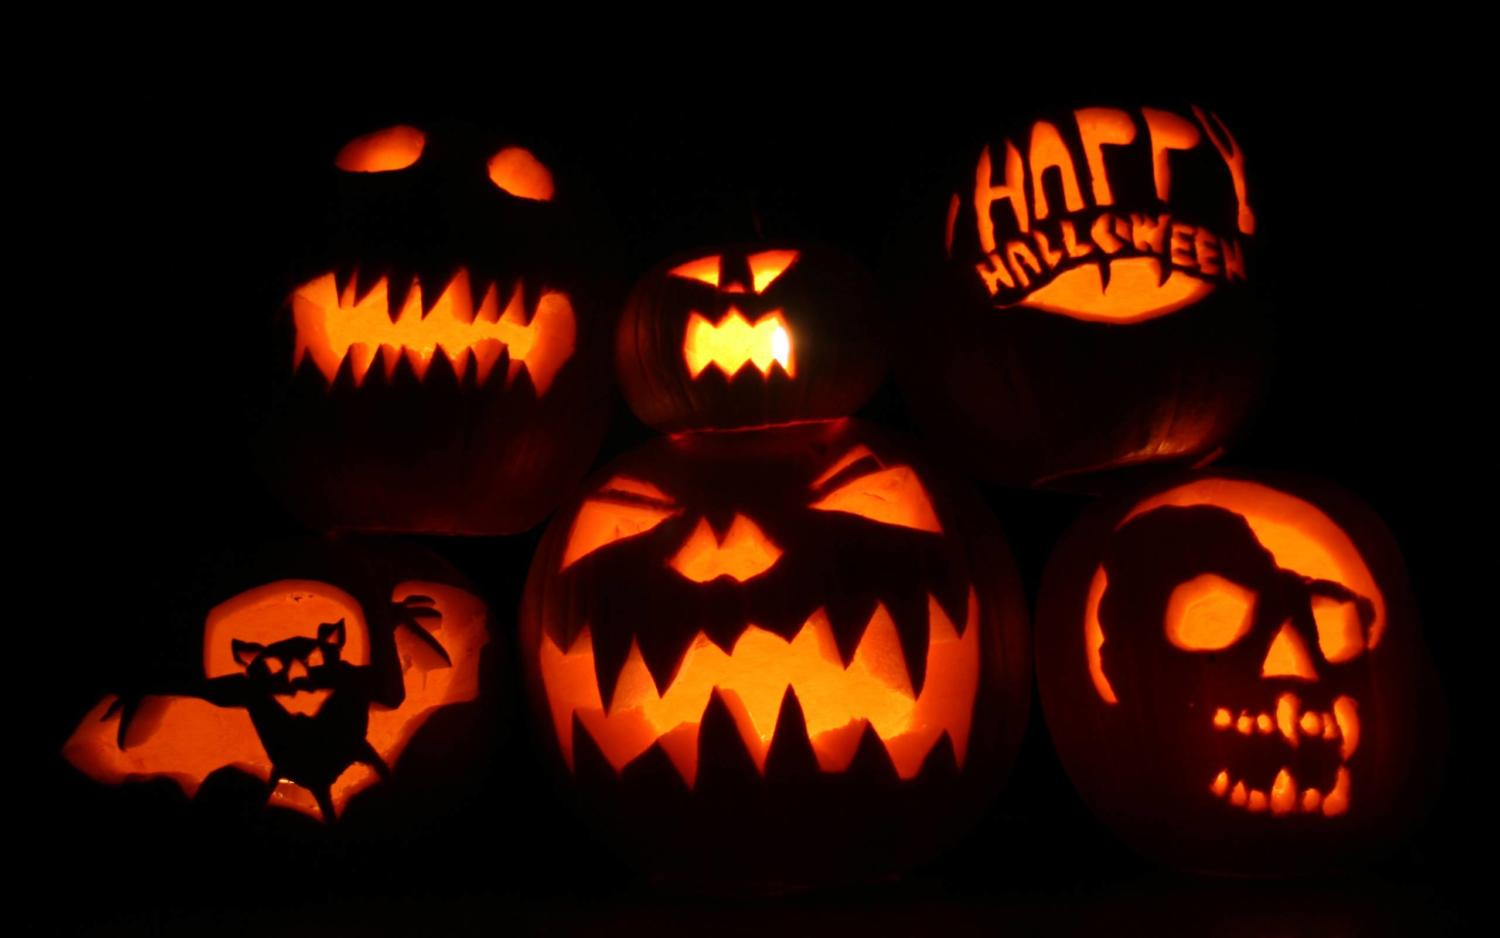 Carving pumpkins is the best way, besides movies and trick or treating, to celebrate Halloween.